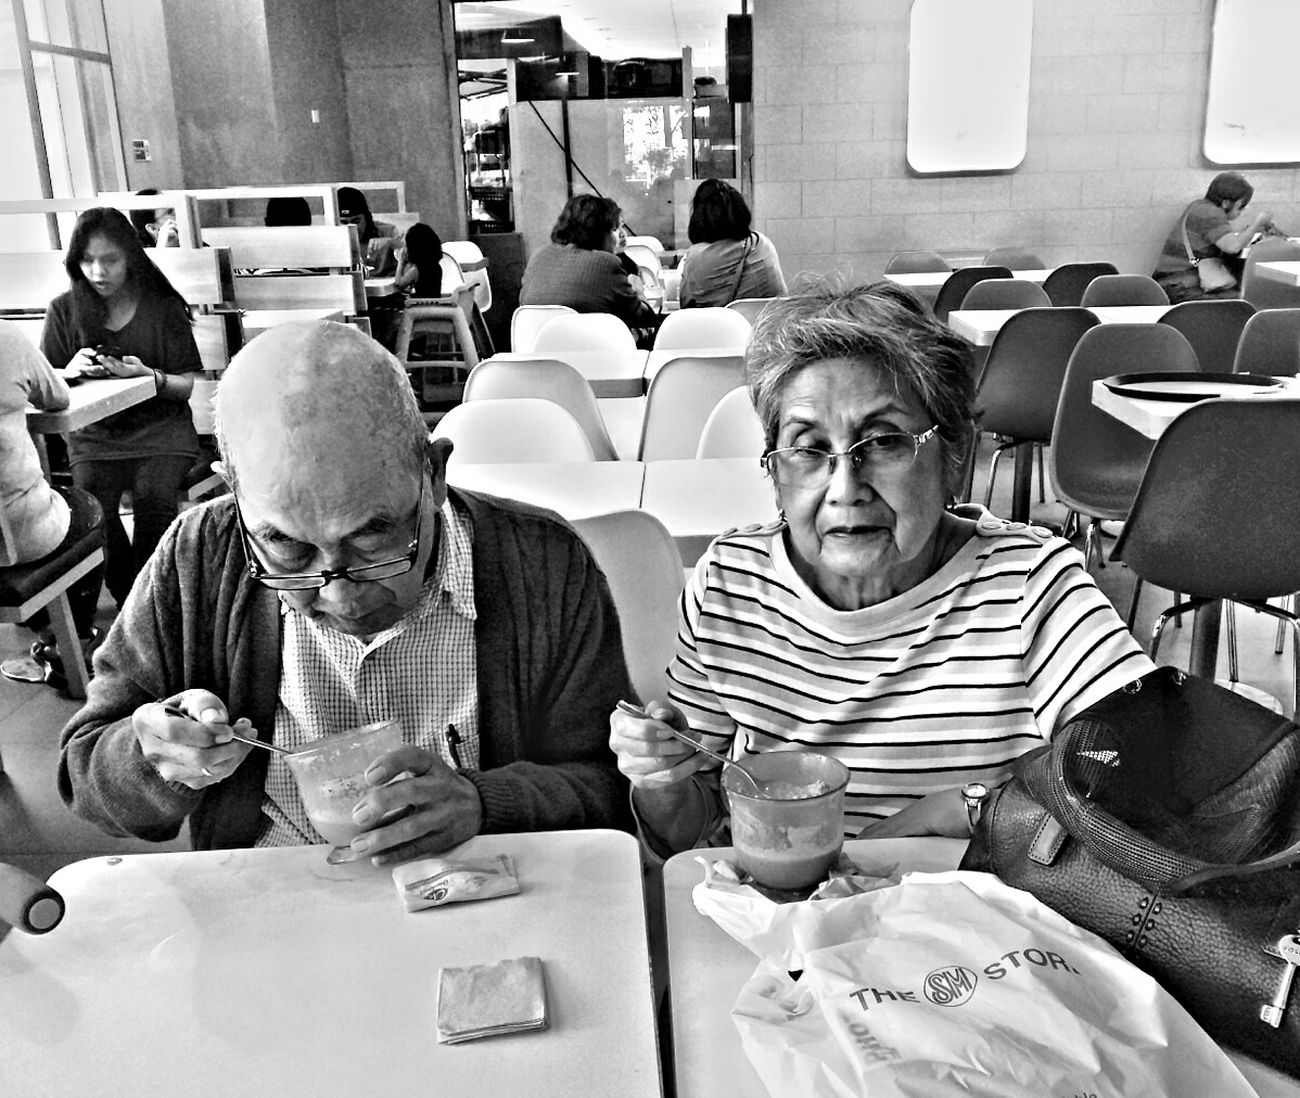 The Week On Eyem Love Love Is In The Air Lovely Couple Forever Amazing People Old People People Portrait People Together Taking Photos Capturing The Moment Two Is Better Than One